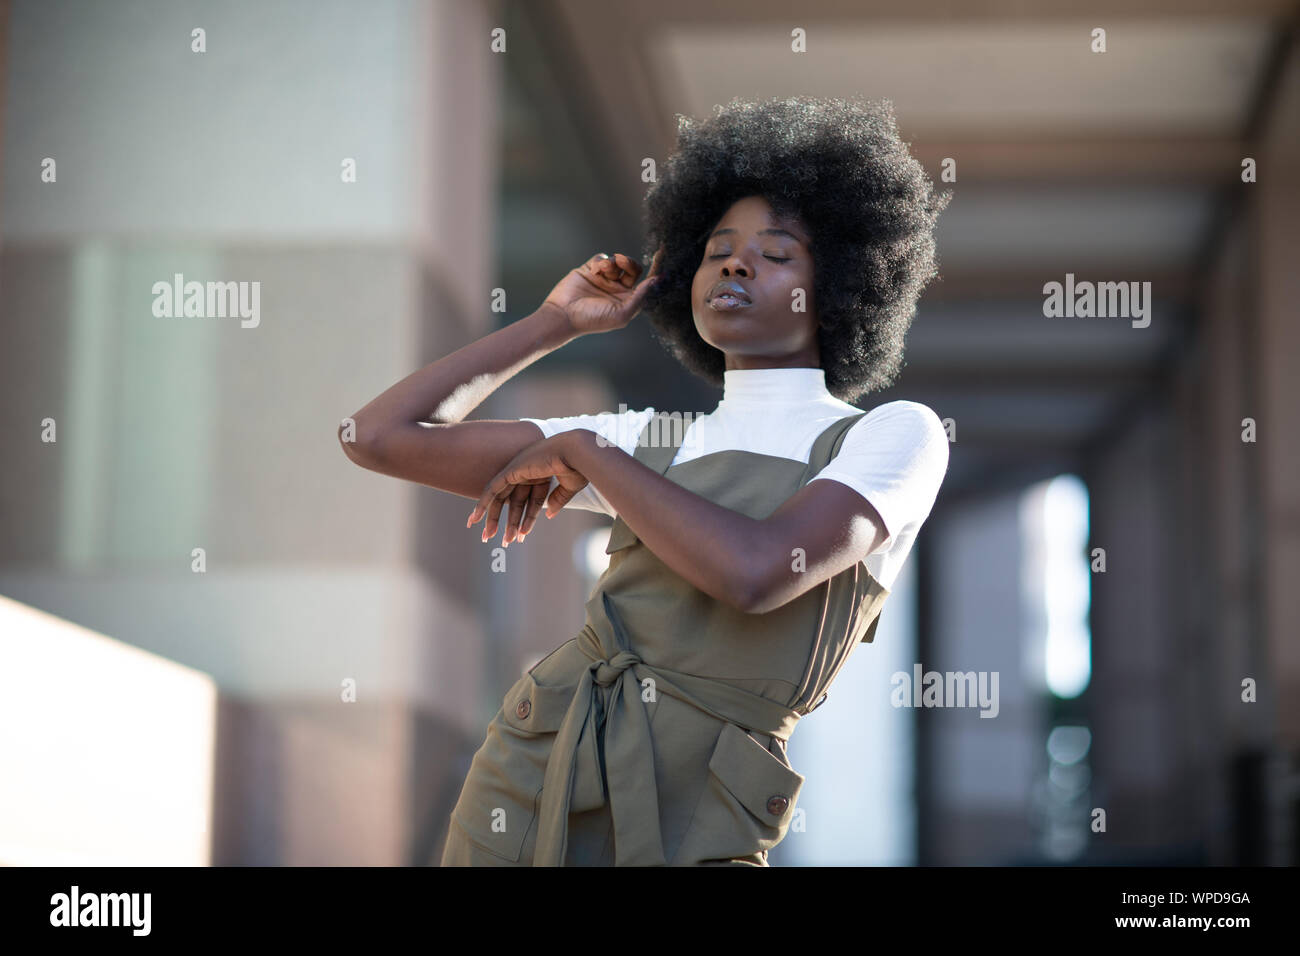 Fashionable African American girl in downtown wearing fancy overalls and white turtleneck Stock Photo